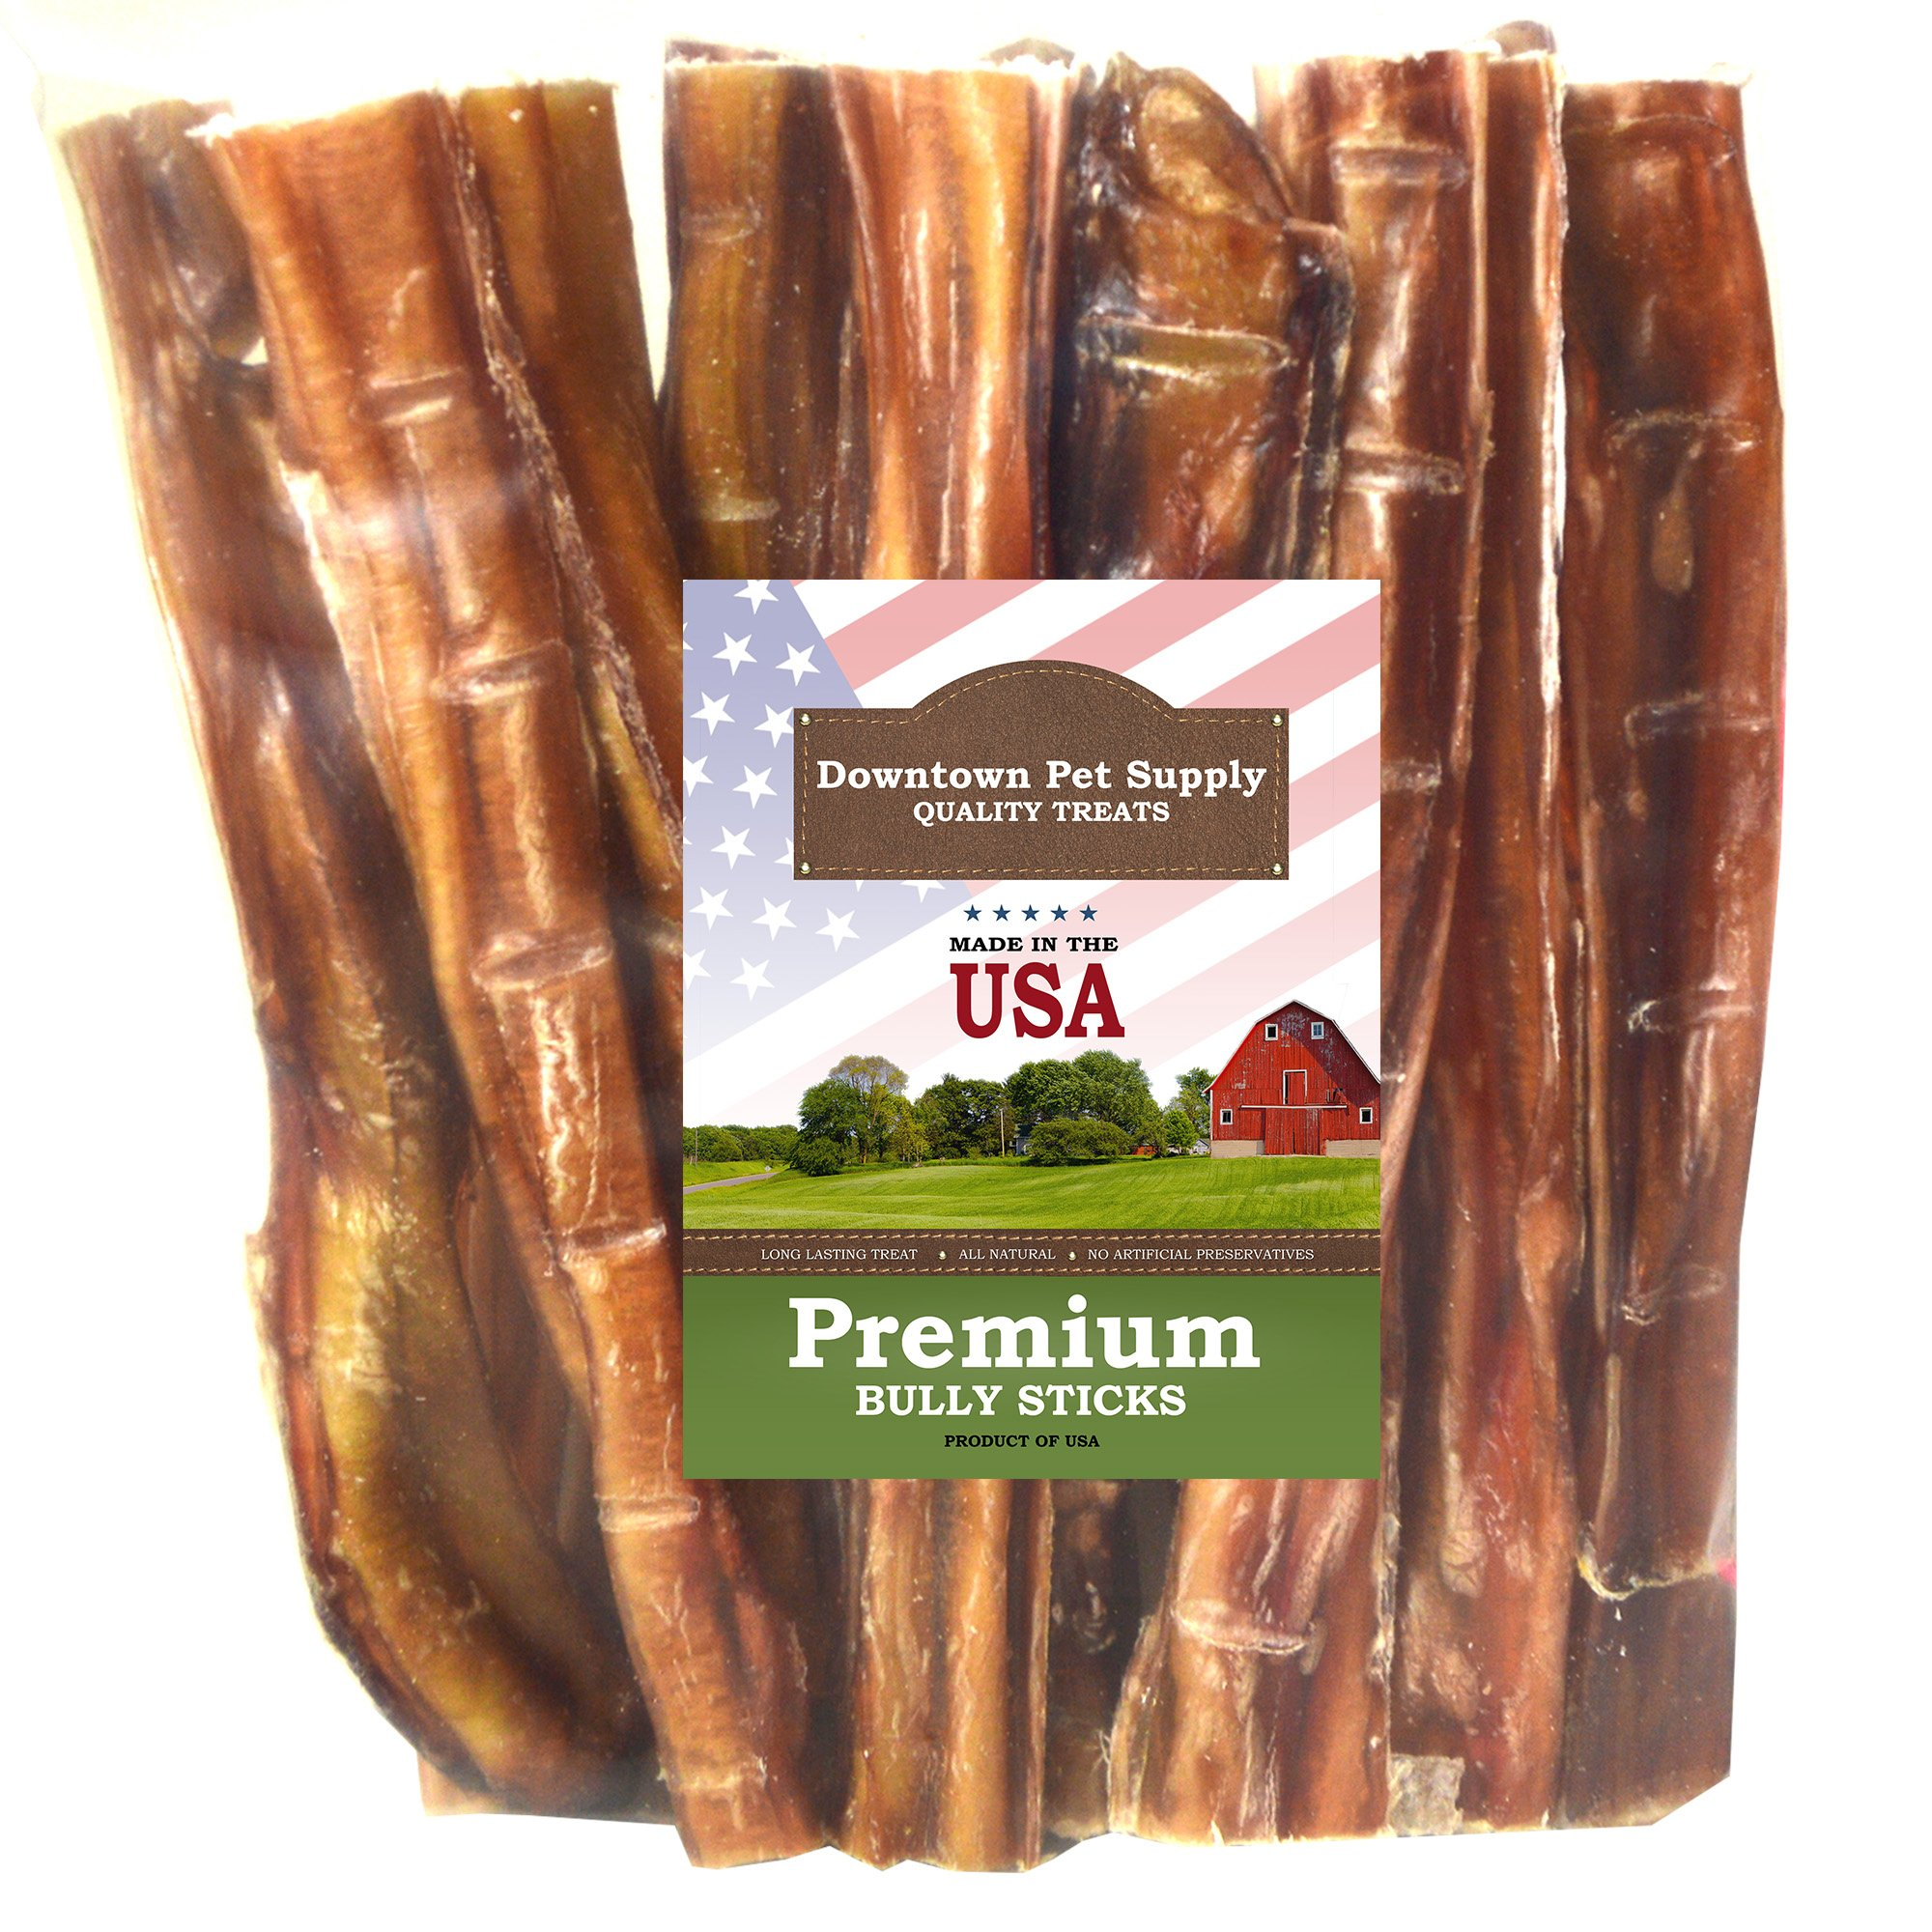 Downtown Pet Supply 6 Inch American Bully Sticks for Dogs Made in USA - Odorless Dog Dental Chew Treats, High in Protein, Alternative to Rawhides (6 Inch, 15 Pack) by Downtown Pet Supply